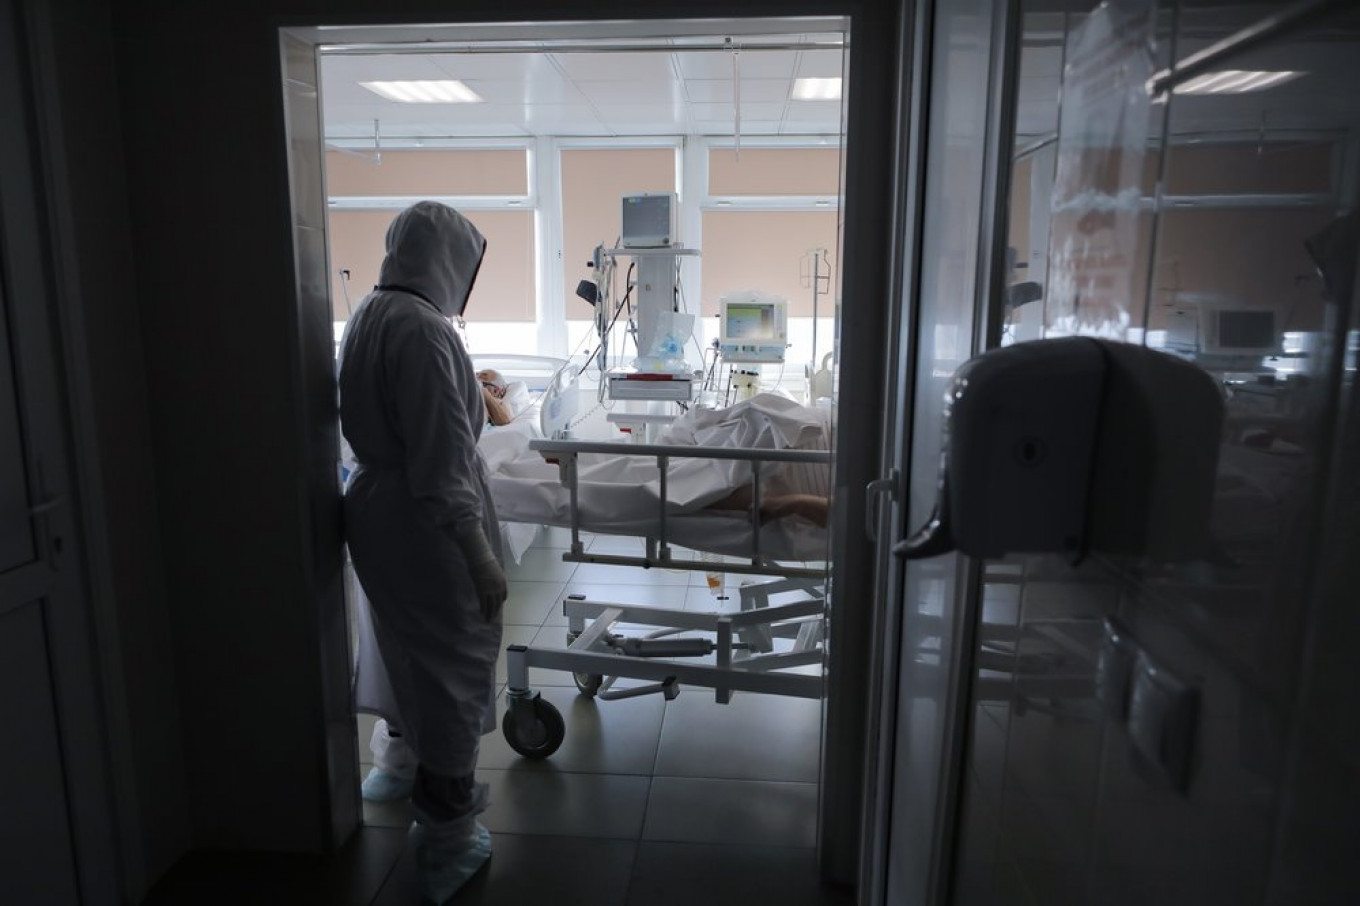 Russia's Coronavirus Deaths Surpass 500 in New One-Day Record